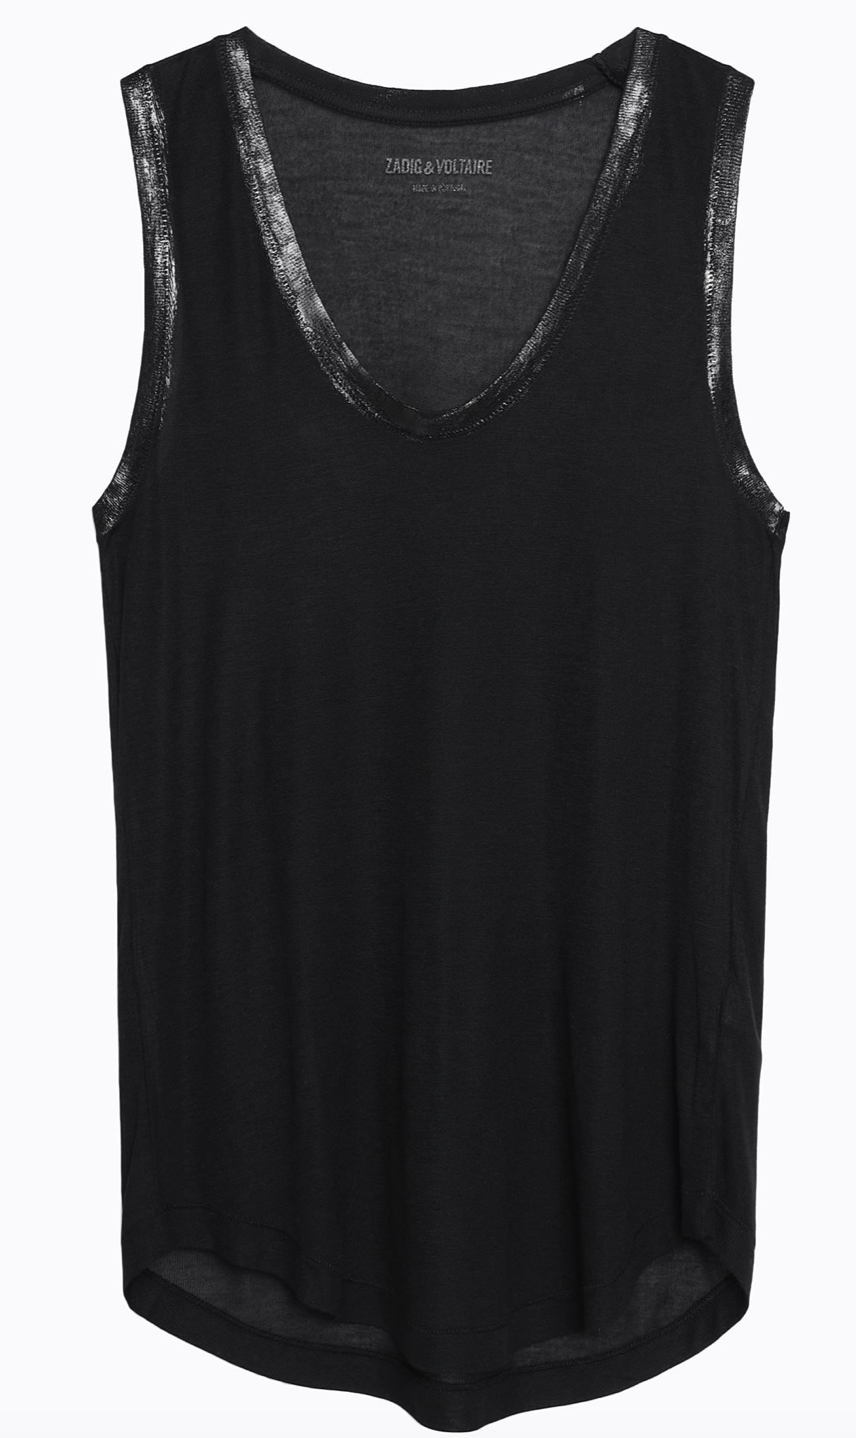 Zadig & Voltaire Tam Foil Tank in Black | 4sisters1closet